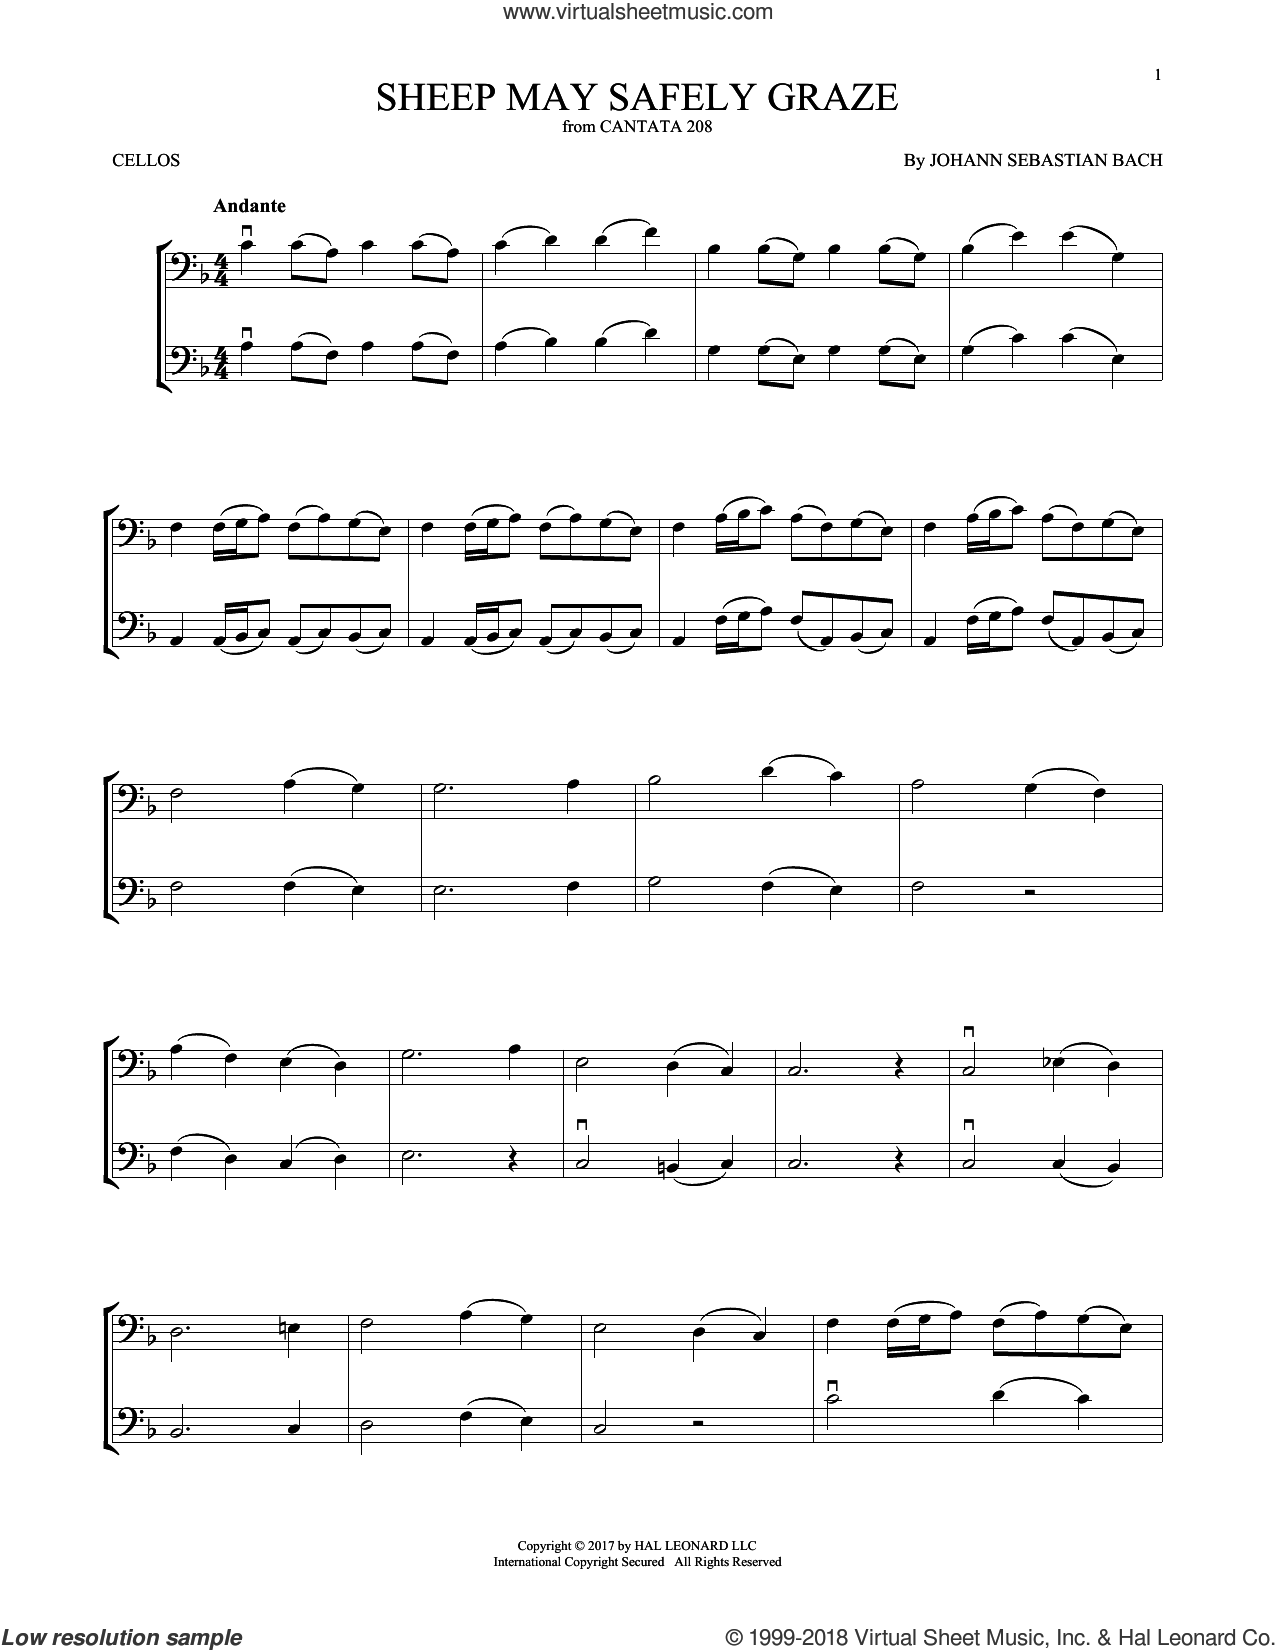 Sheep May Safely Graze sheet music for two cellos (duet, duets) by Johann Sebastian Bach, classical score, intermediate skill level